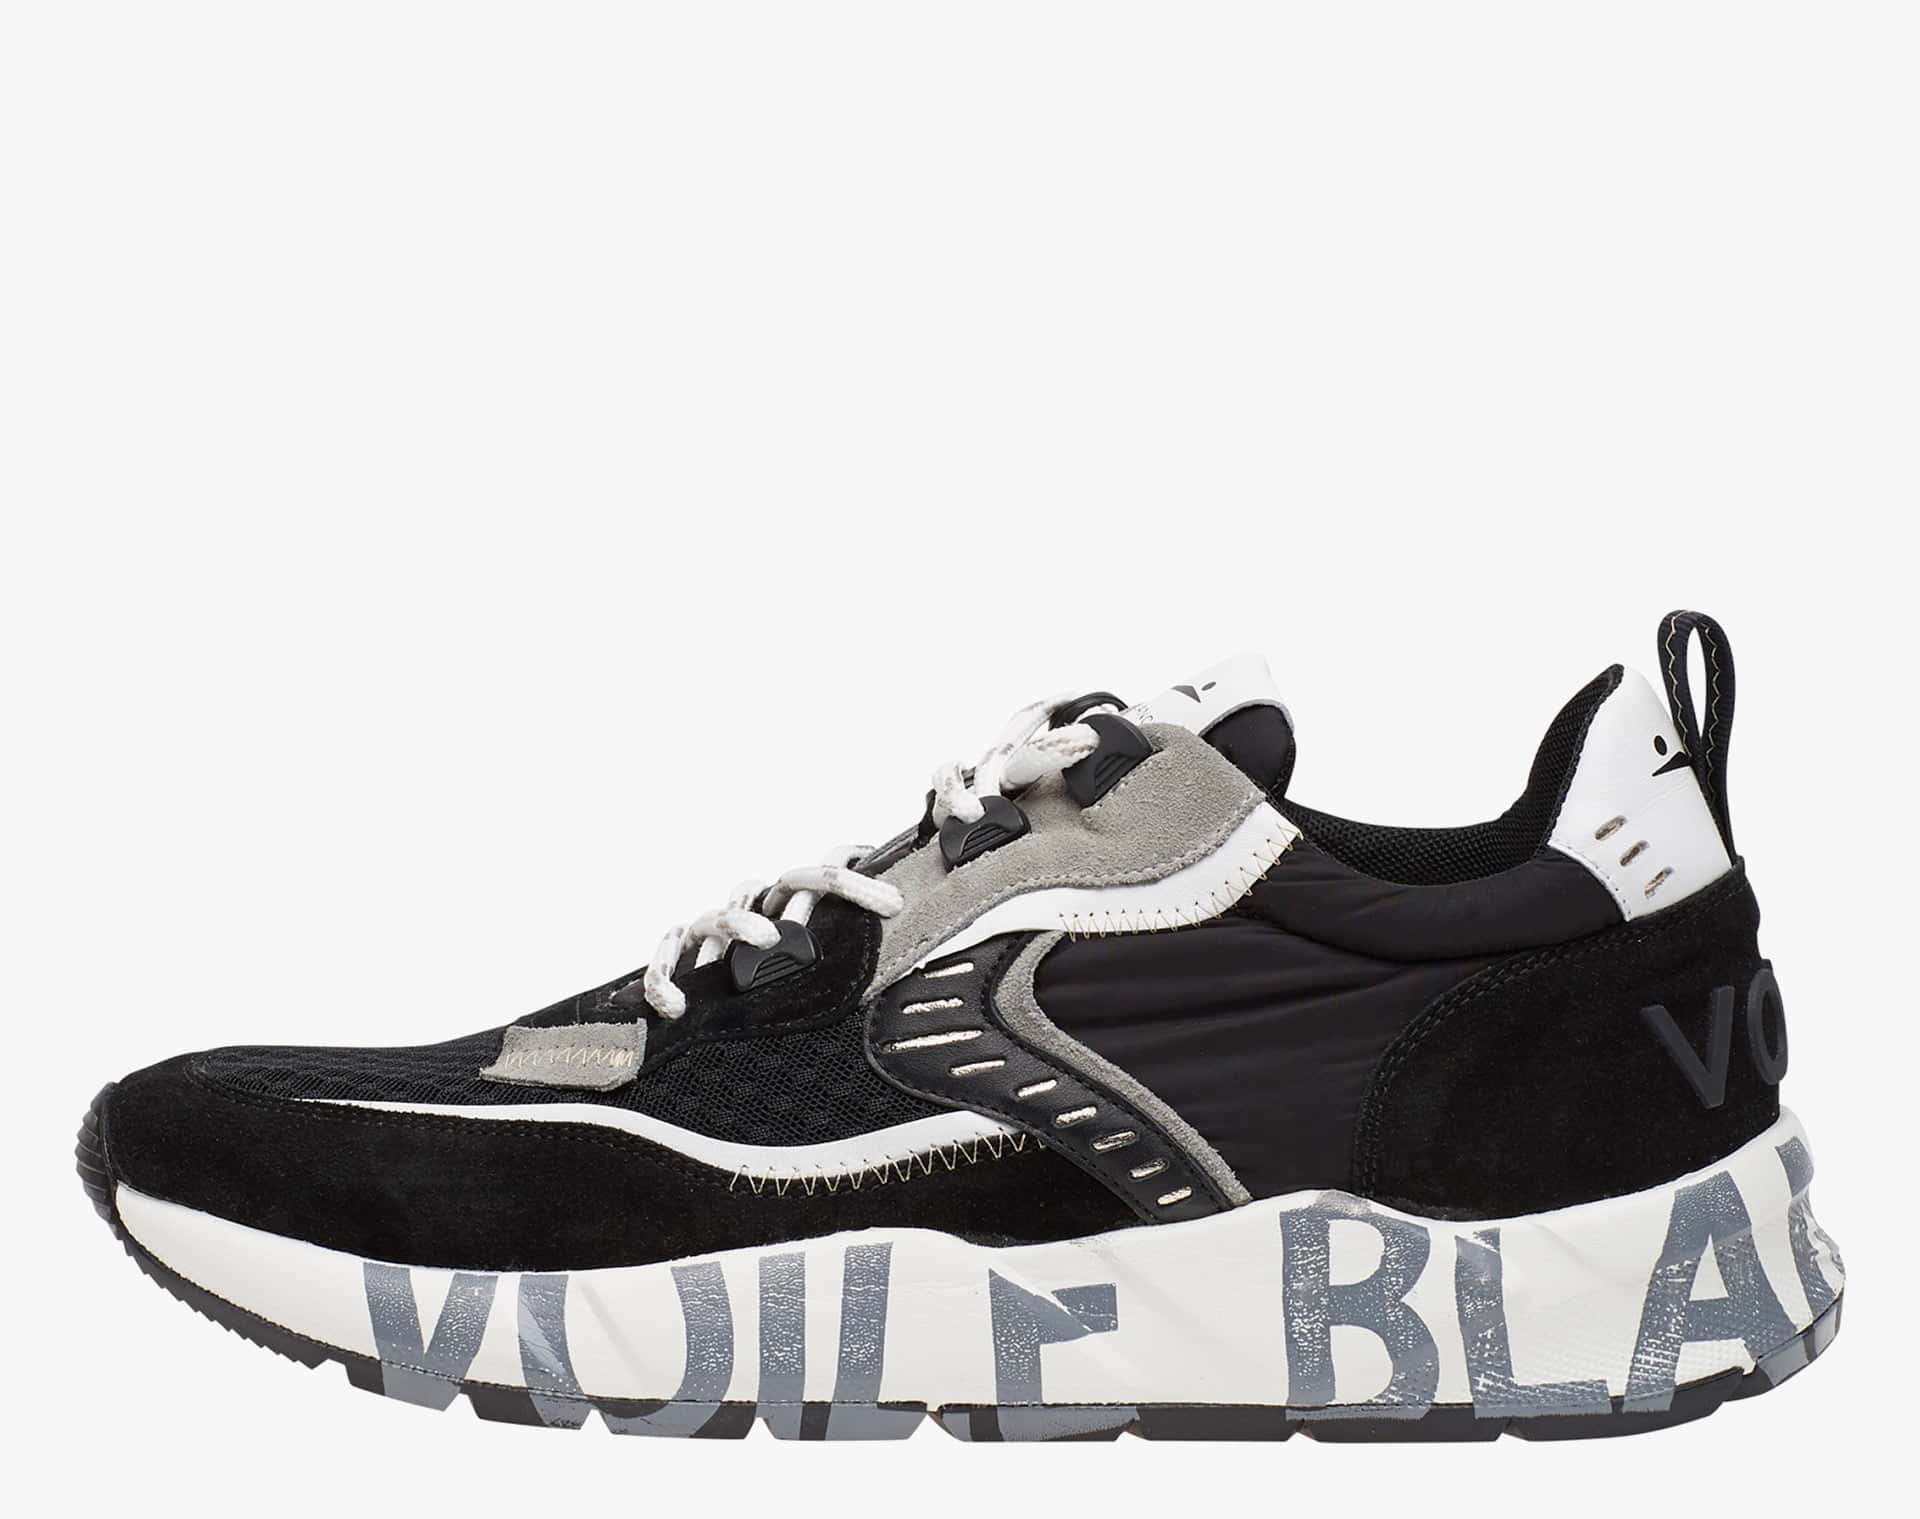 CLUB01 - Suede and technical fabric sneakers - Black